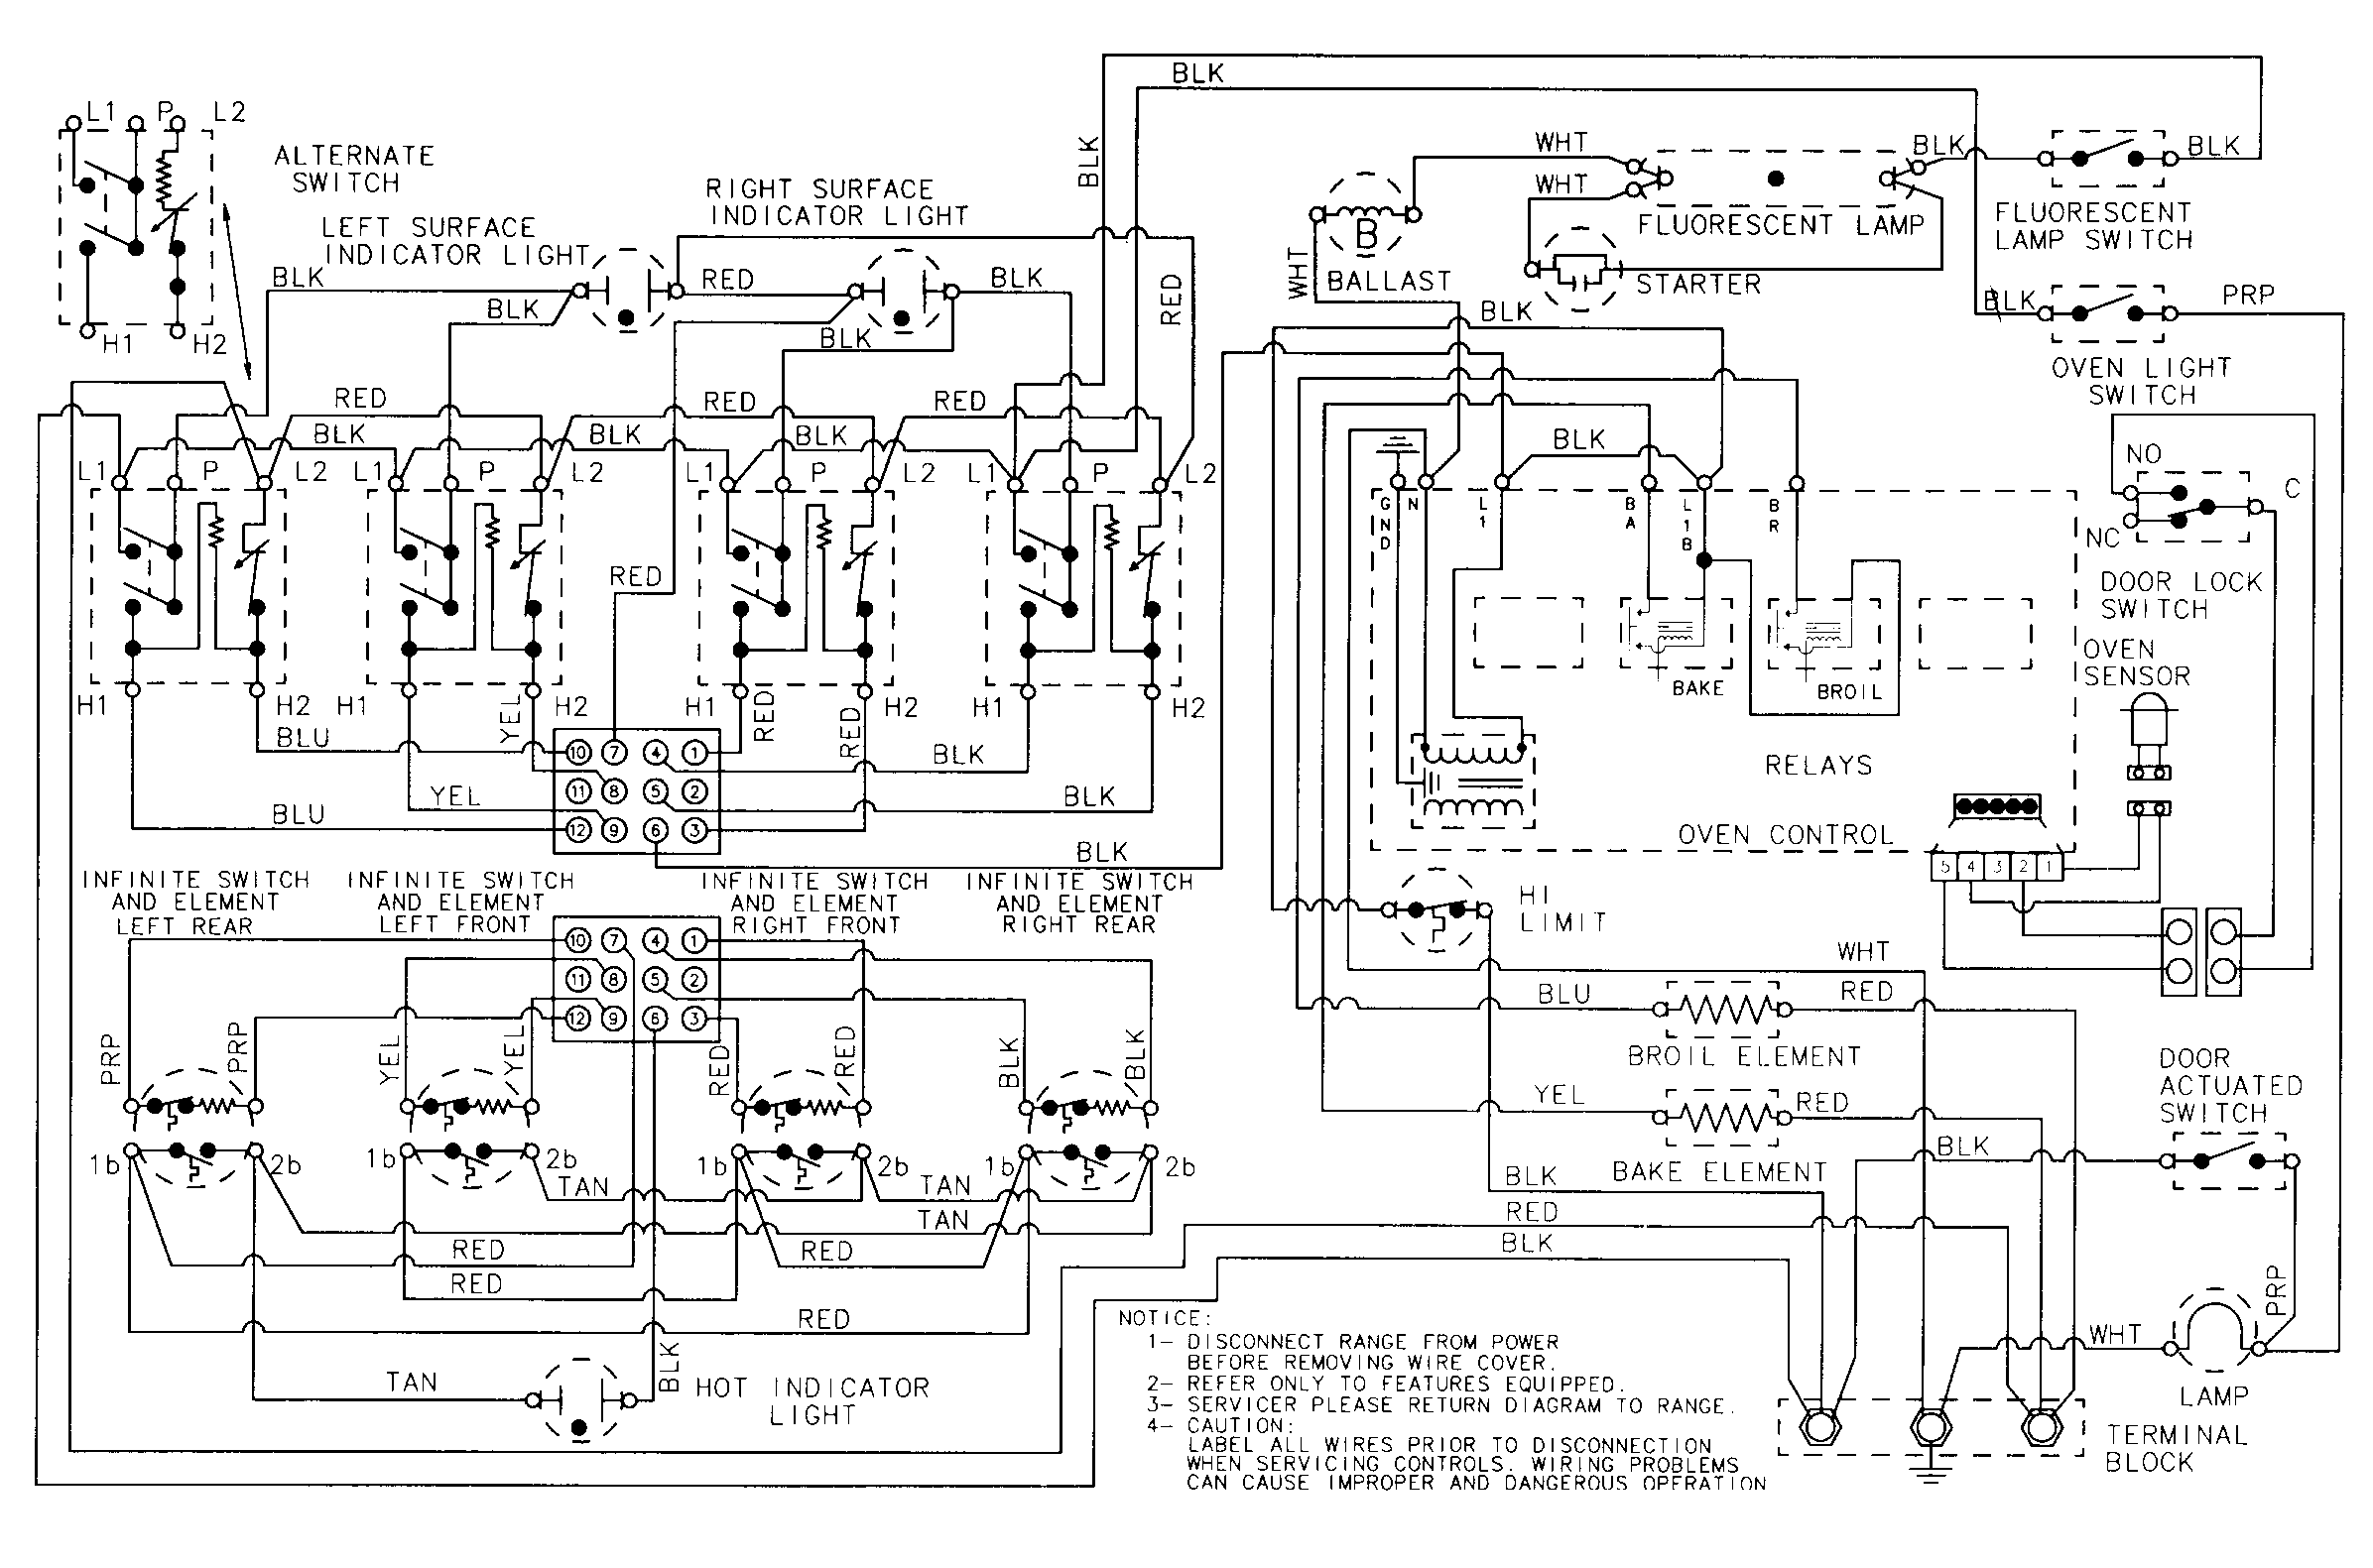 wiring information parts york control board wiring diagram electric motor control circuit lh33wp003a wiring diagram at gsmx.co